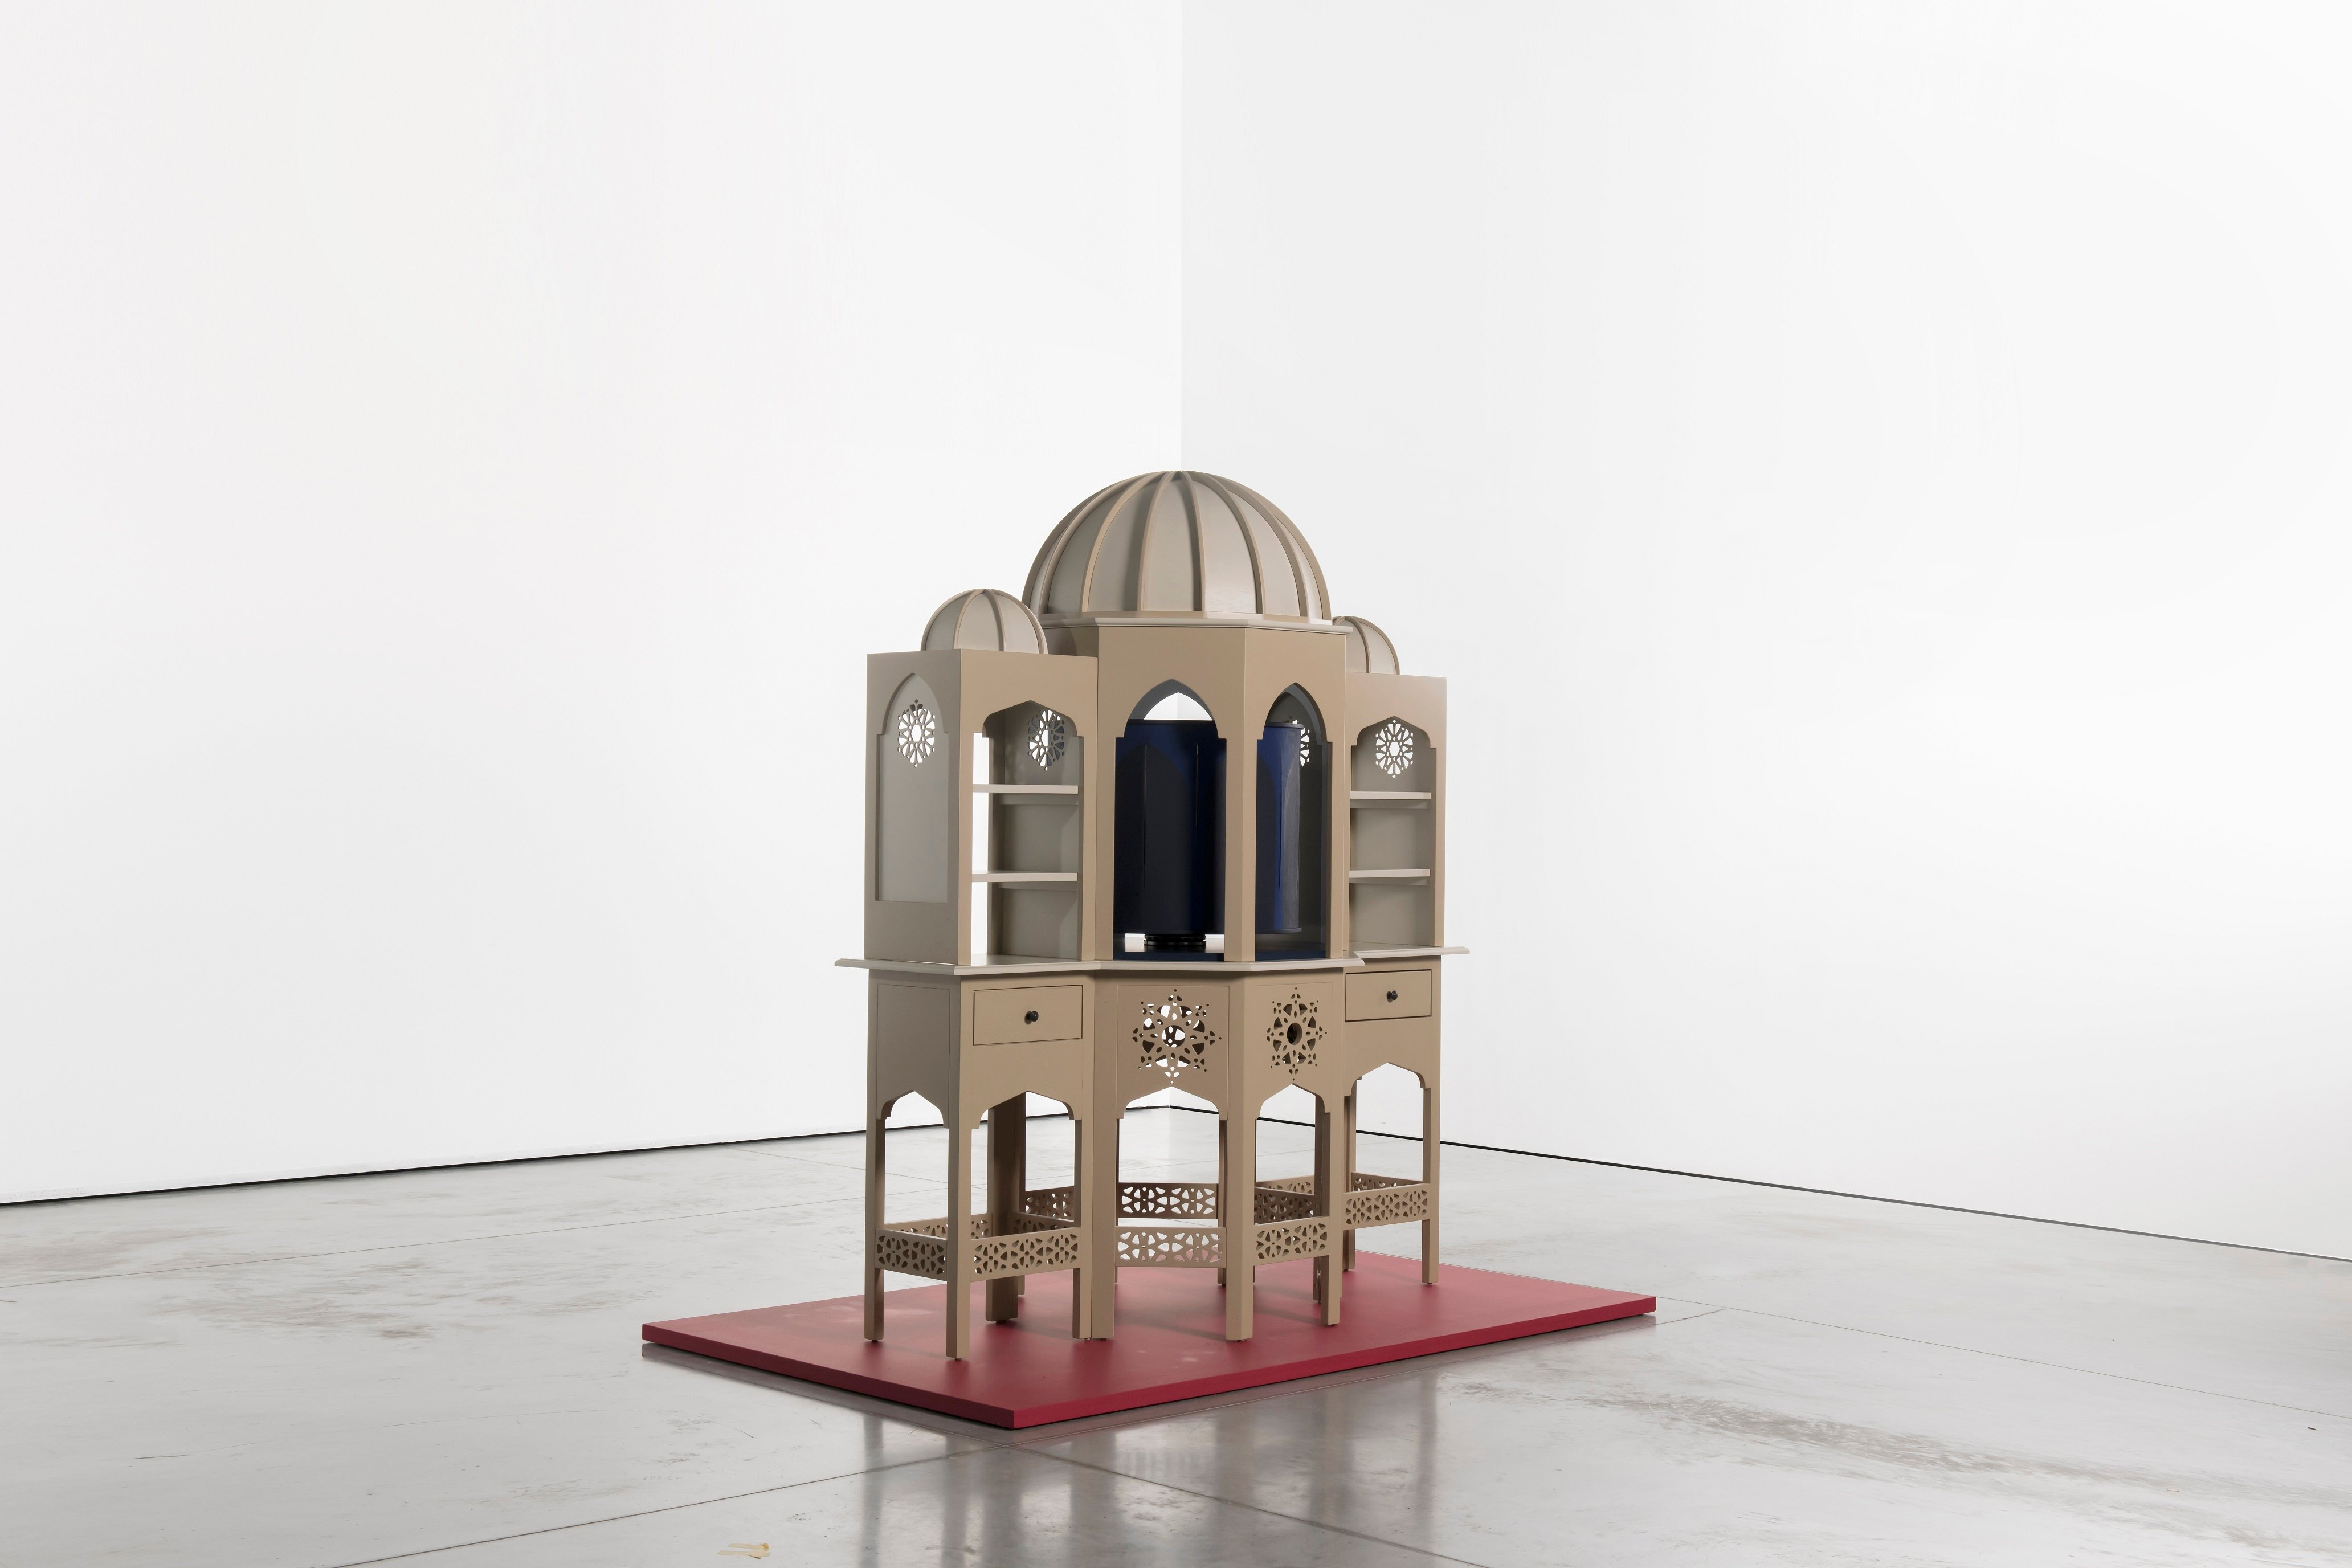 Randi & Katrine's Turkish bath model, 205x170x90 cm. (Courtesy of Istanbul Modern)